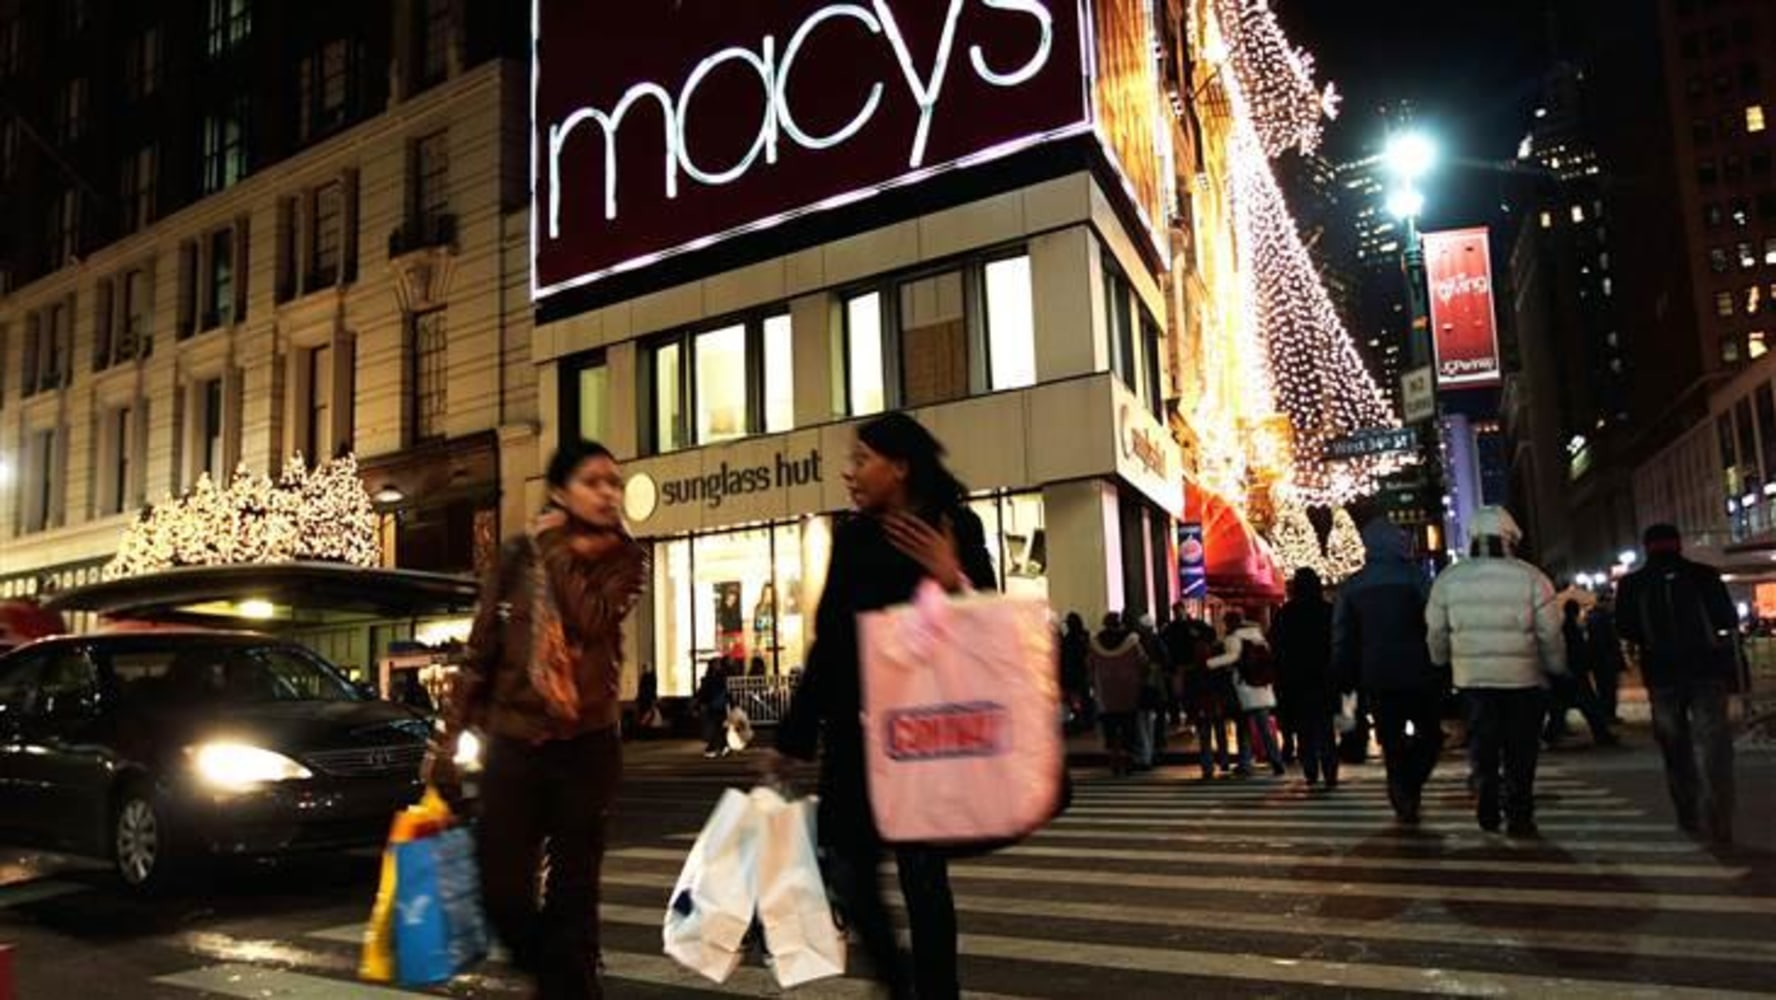 Macy's department store closing in Moscow